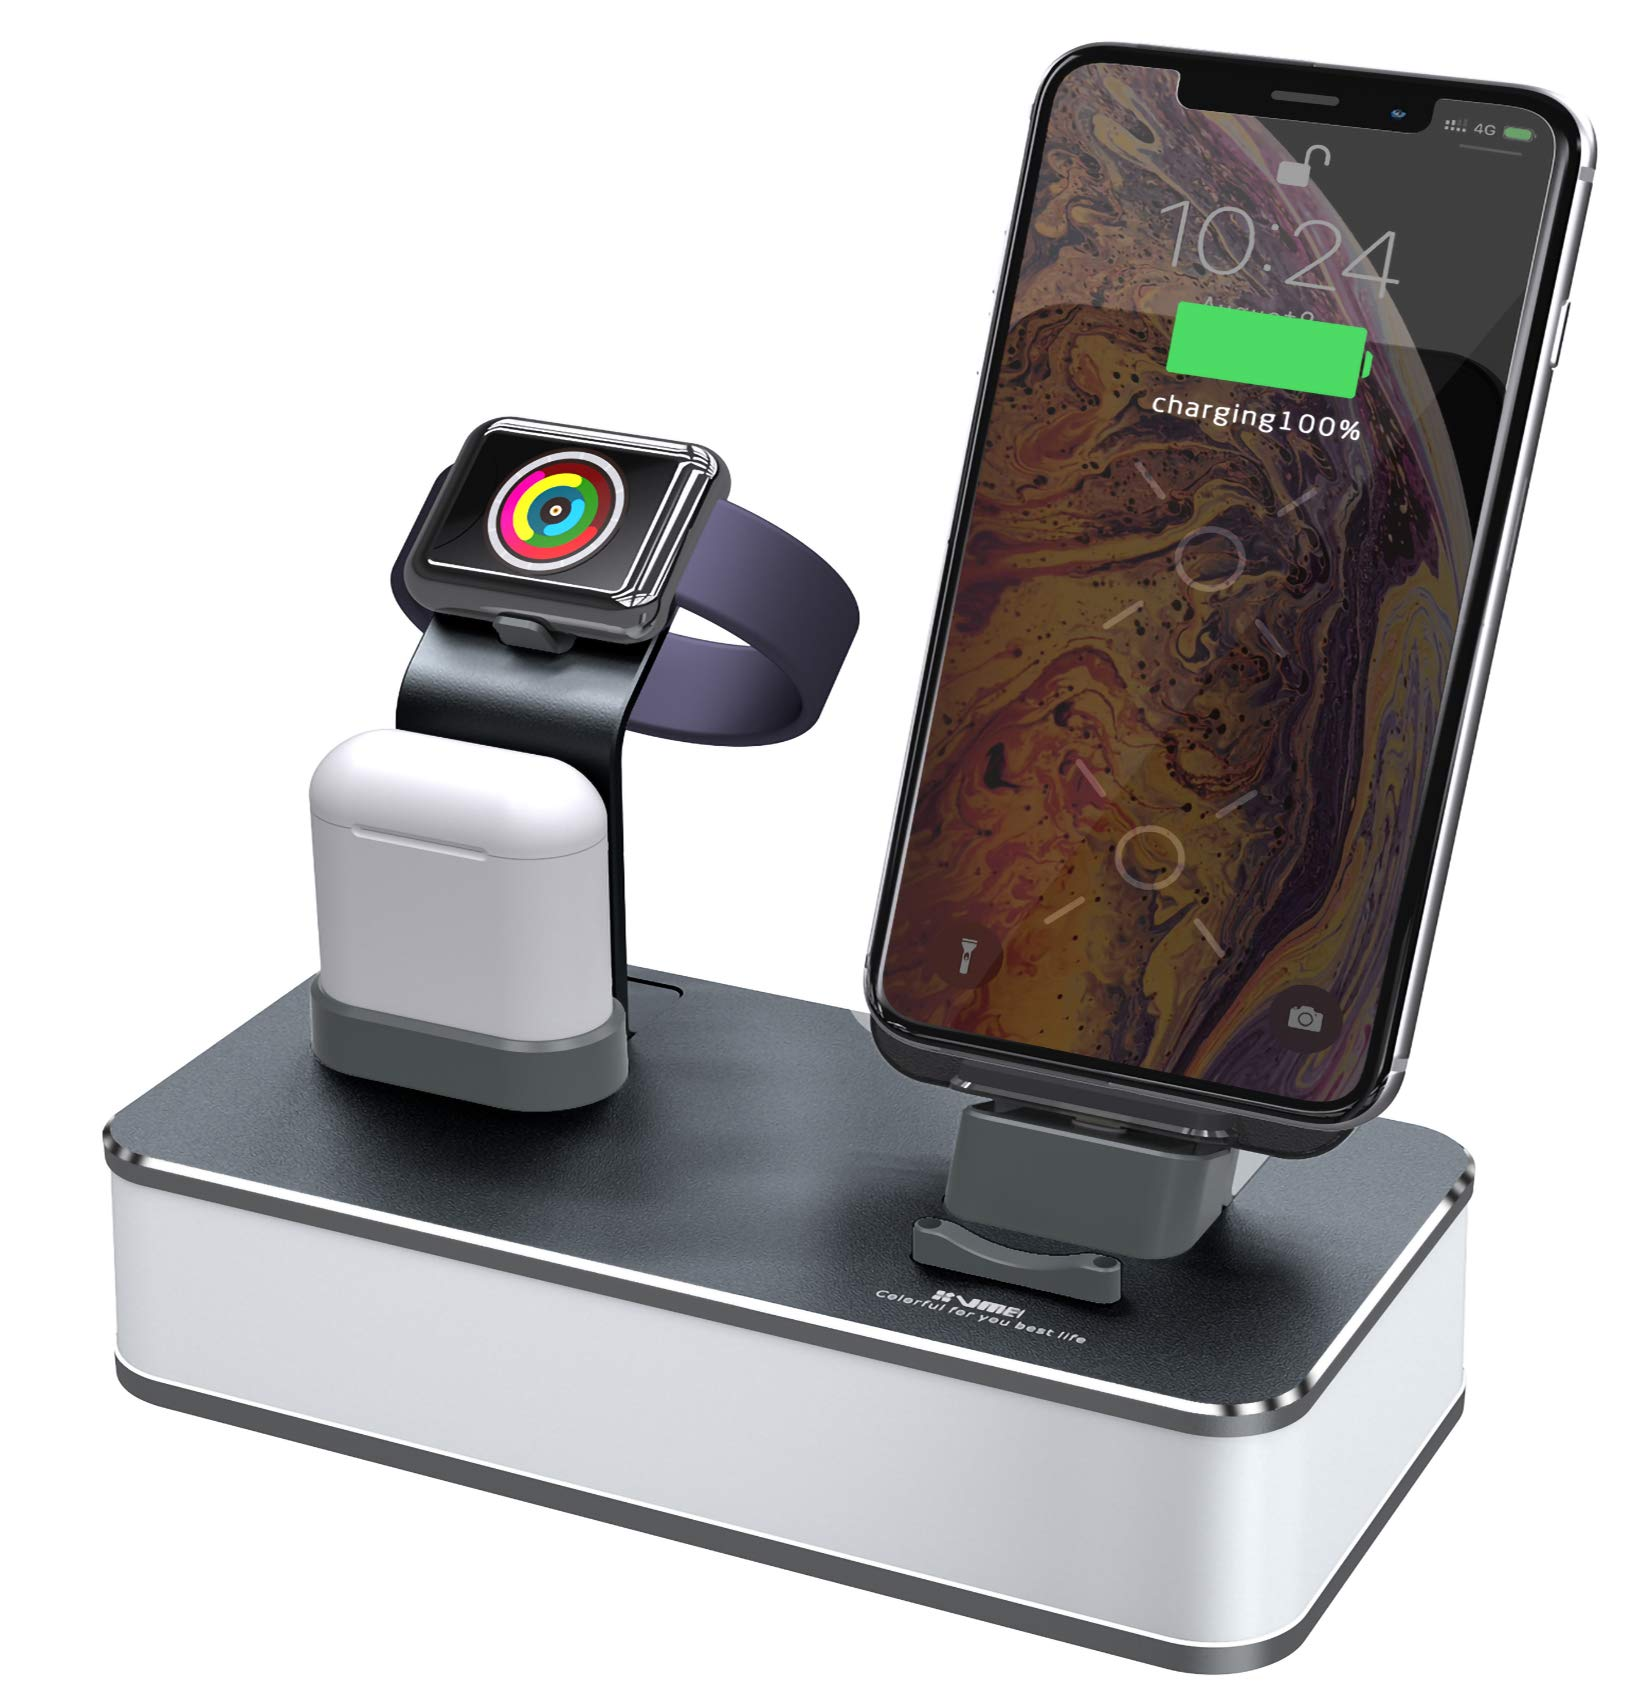 VMEI 7 in 1 CNC Aluminum Cellphone Charging Station/Wireless Charger for Cellphone/iWatch/airpods Charging Cradle/Integrated 45w PD Output/Nightlight(Gray) by VMEI